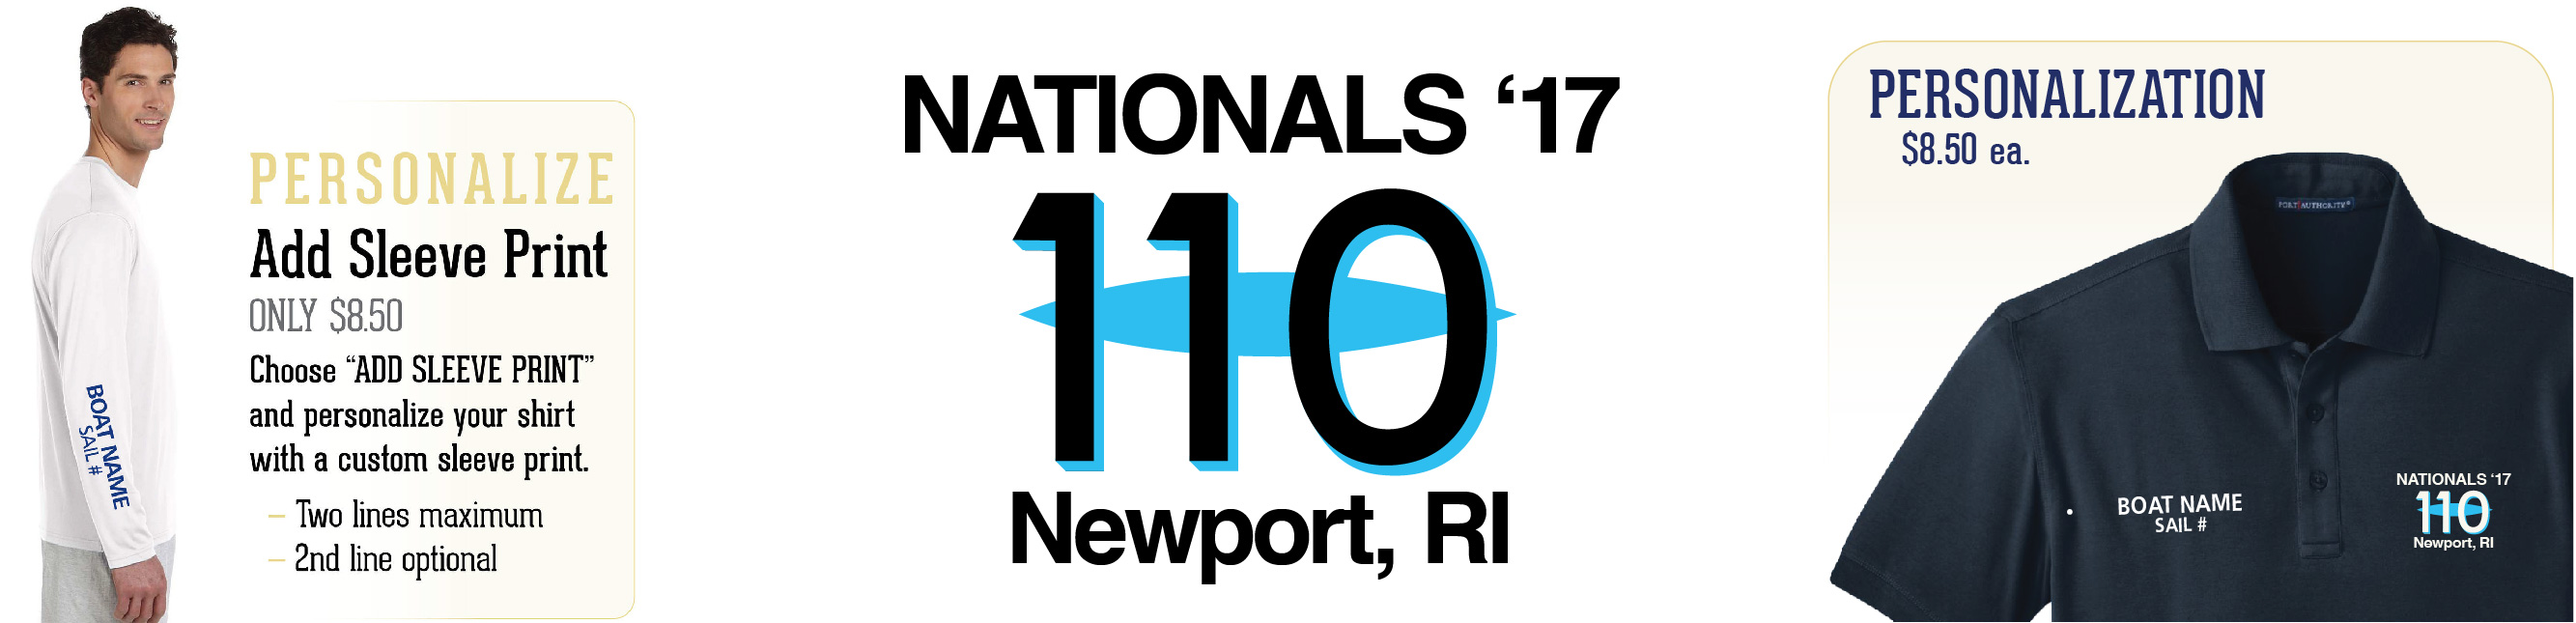 110-nationals-2017-category-banner-b-01.jpg